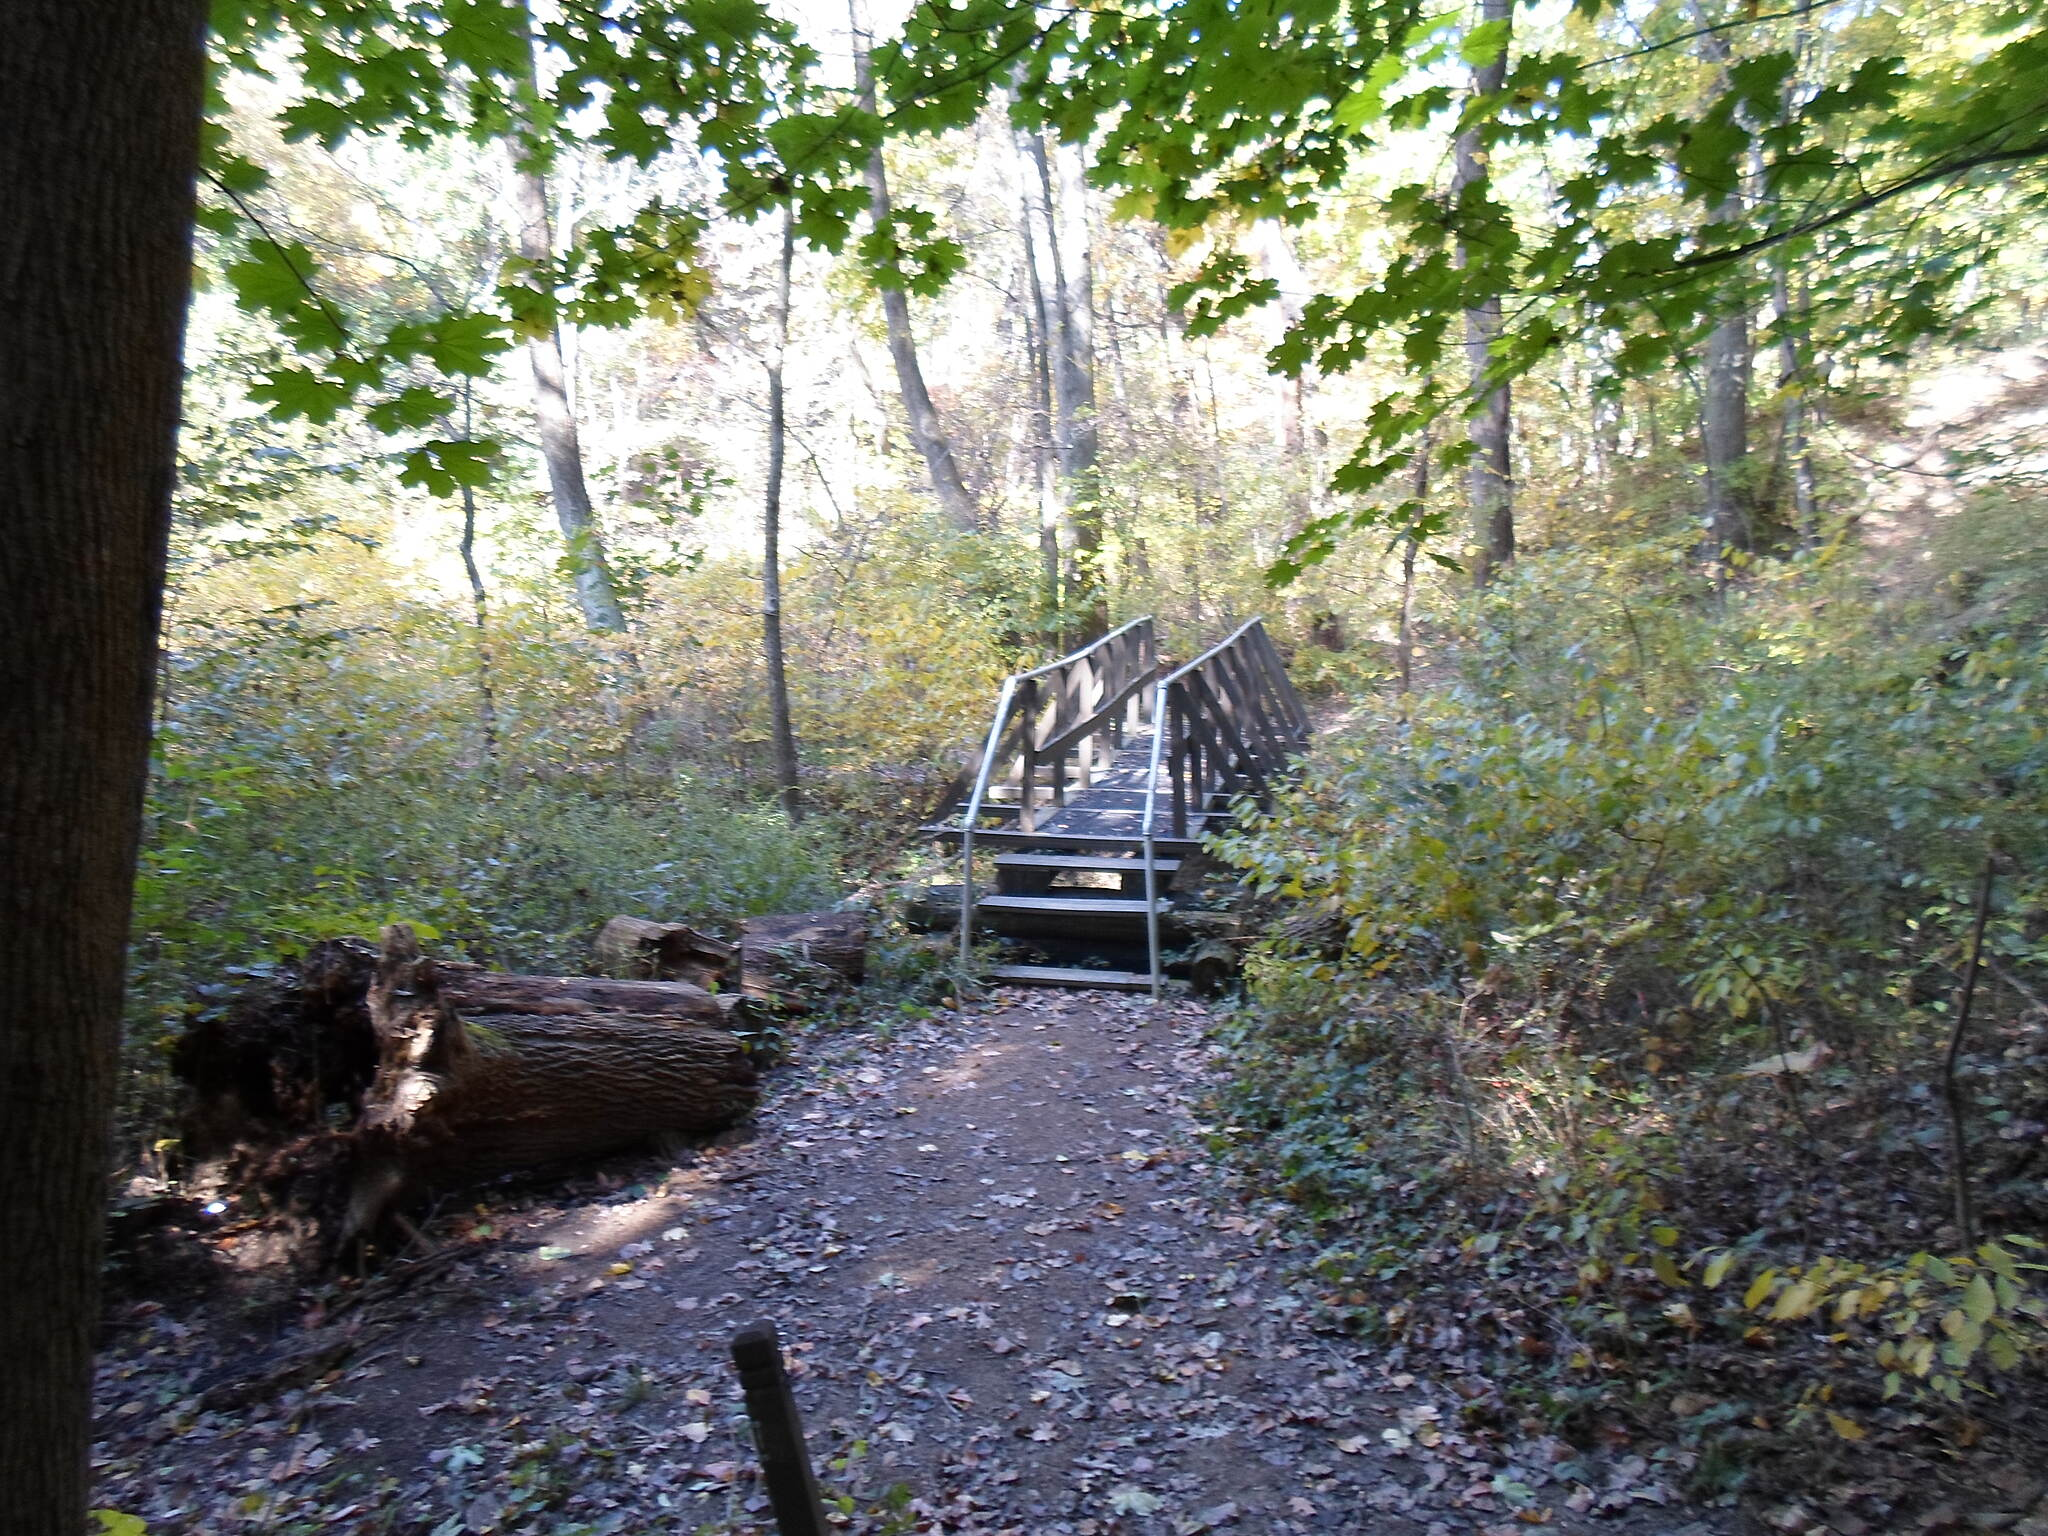 Capital Area Greenbelt Capital Area Greenbelt In addition to the main trail, there are also a few primitive footpaths in the 'greenbelt.' This wooden footbridge is along one of those paths that branches off the section between Paxtang and Pembrooke.